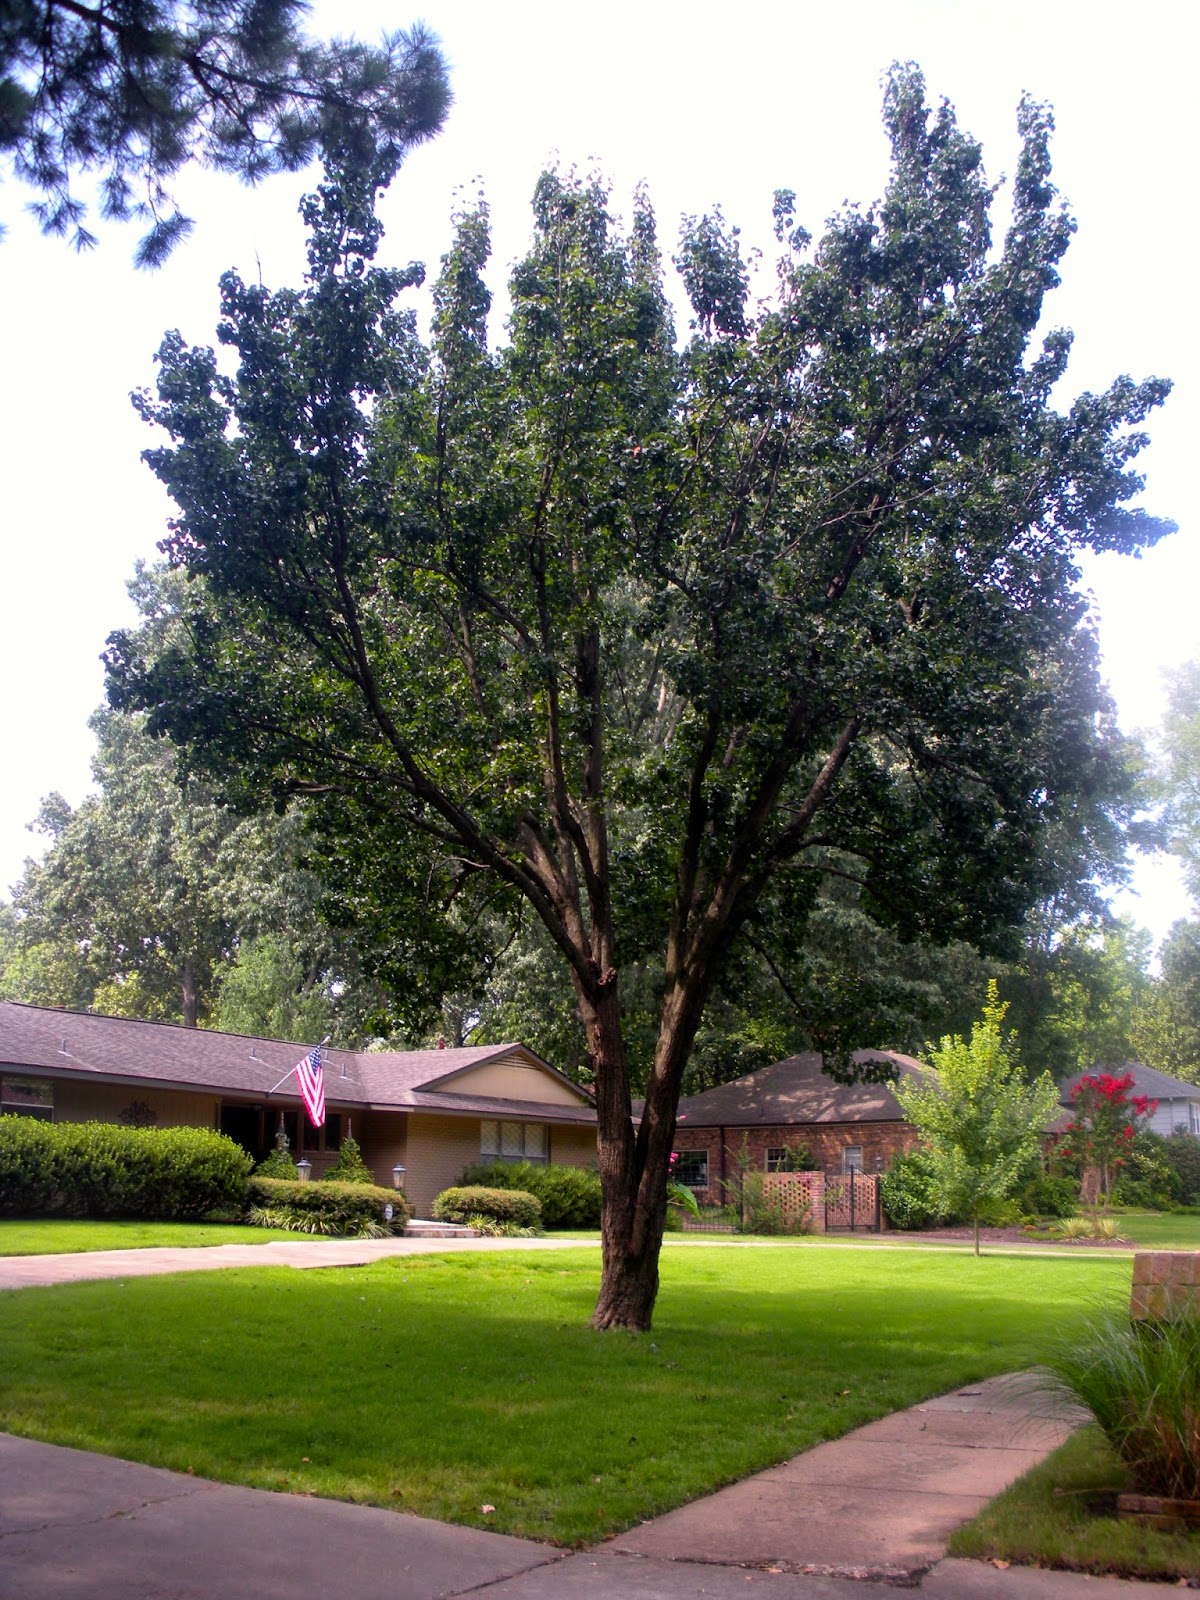 Memphis trees august 2014 Bradford pear